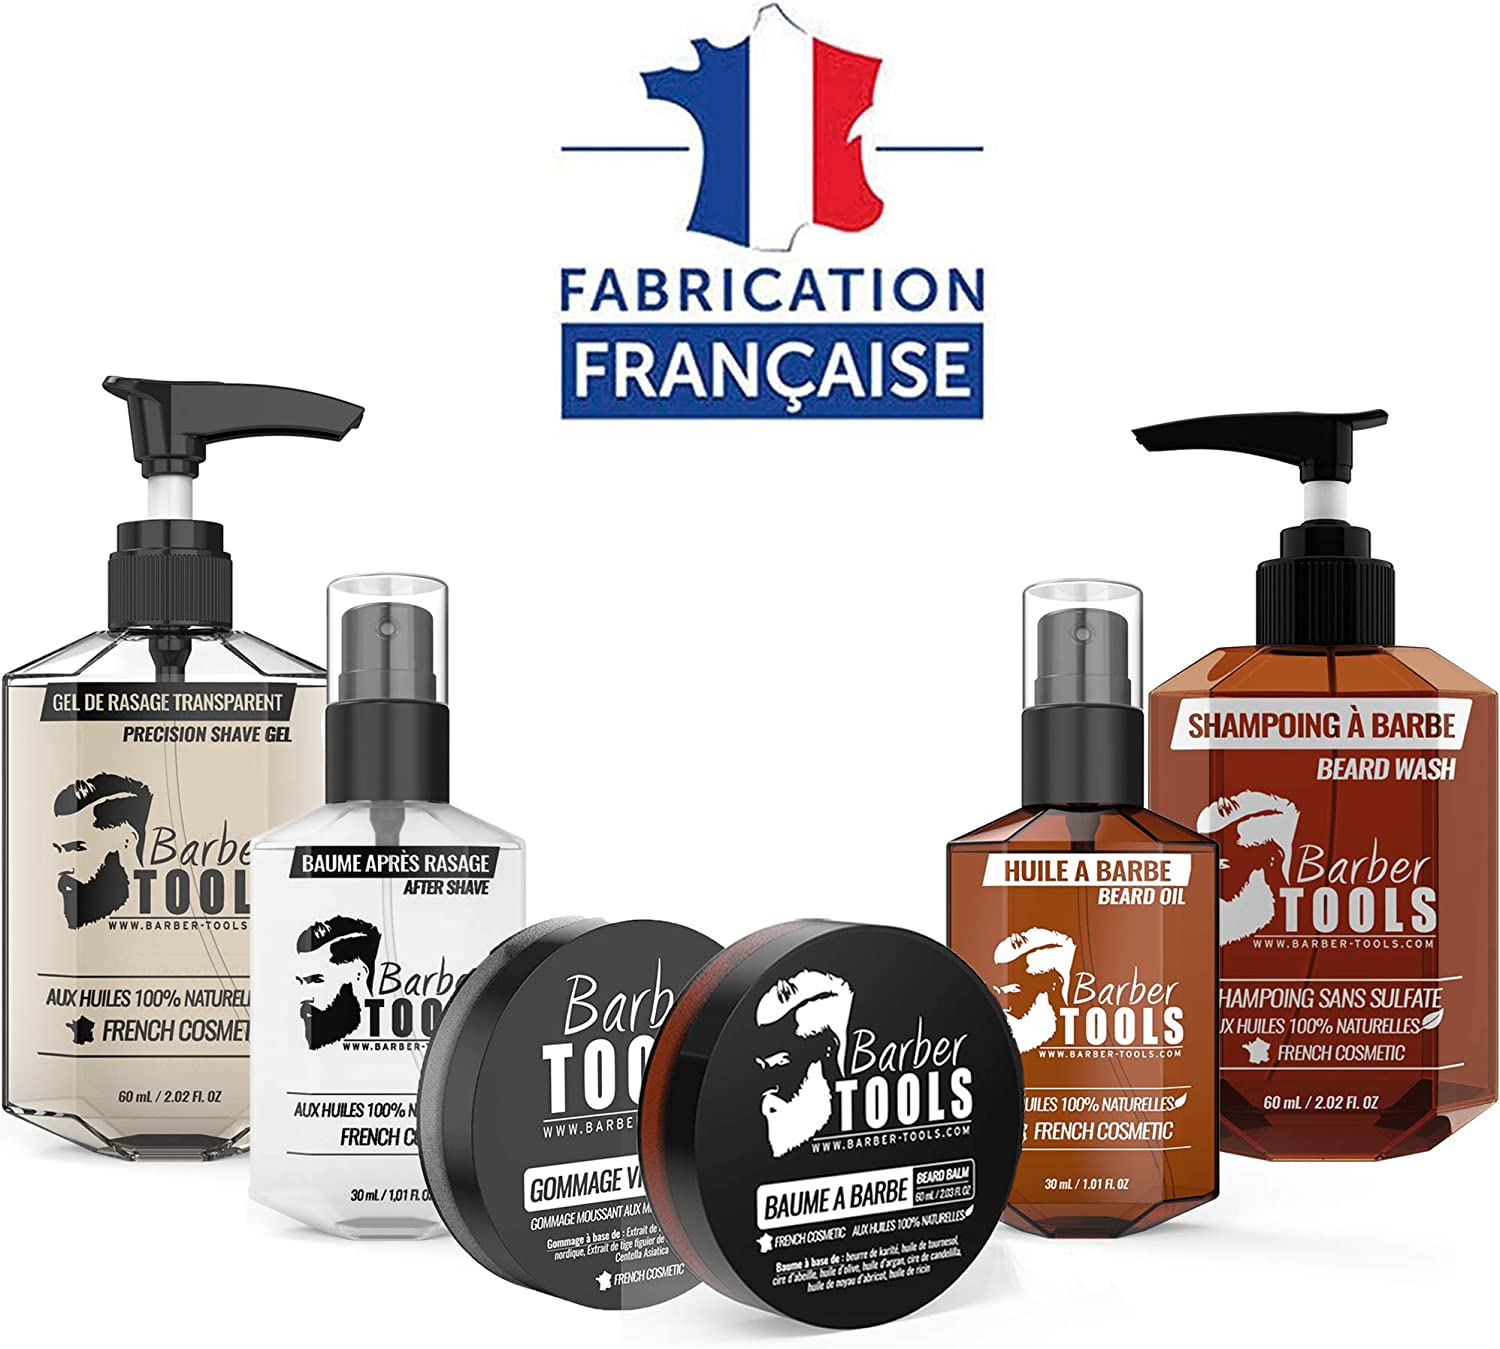 ✮ BARBER TOOLS ✮ Kit/Set/Estuche de arreglo y cuidado de la barba y afeitarse | Cosmético Made in French: Amazon.es: Belleza